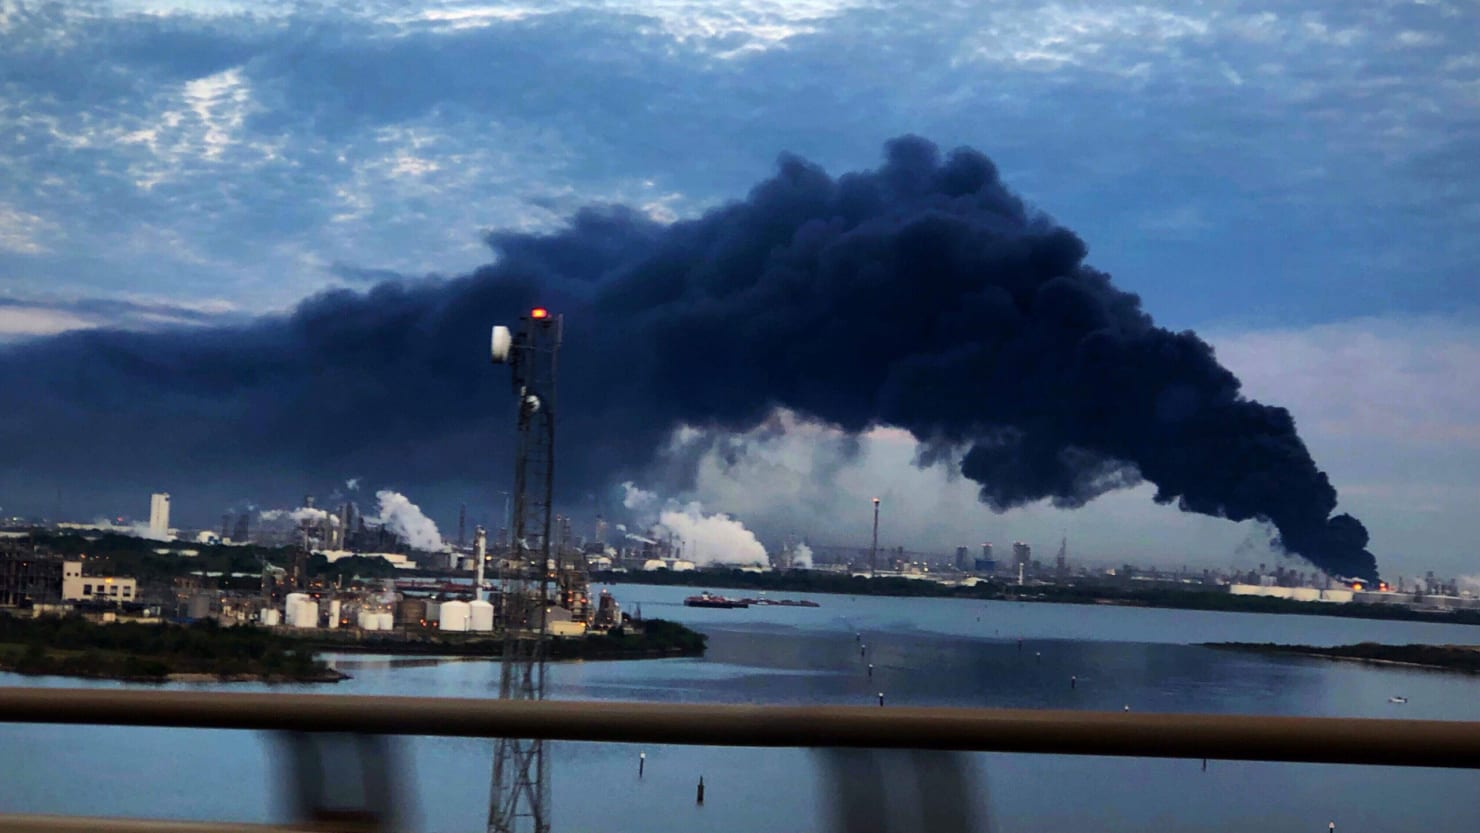 Report: Hundreds Seek Medical Help After Houston Chemical Plant Fire